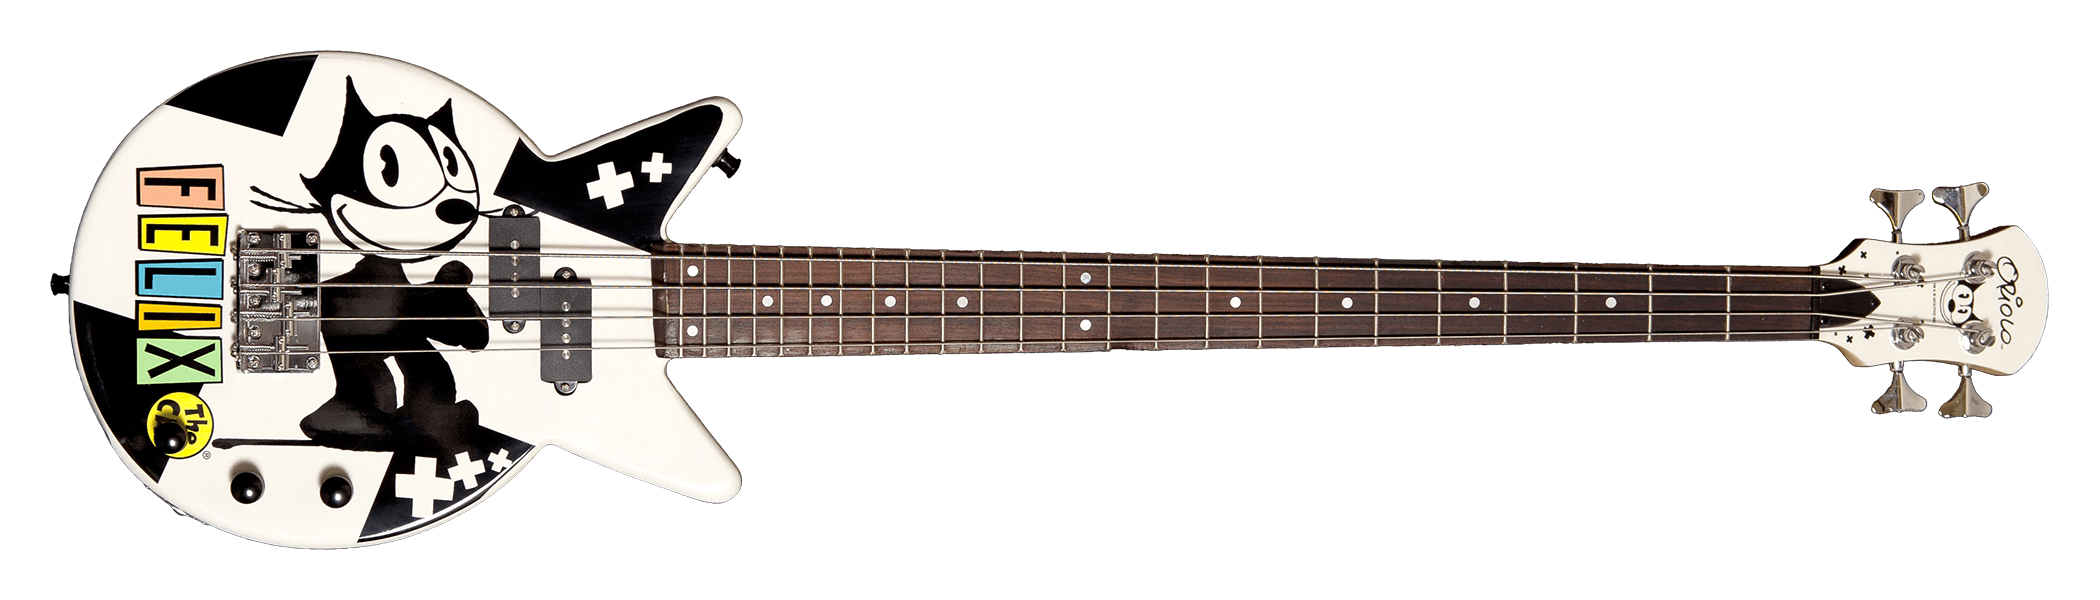 Felix Vibrotail Bass